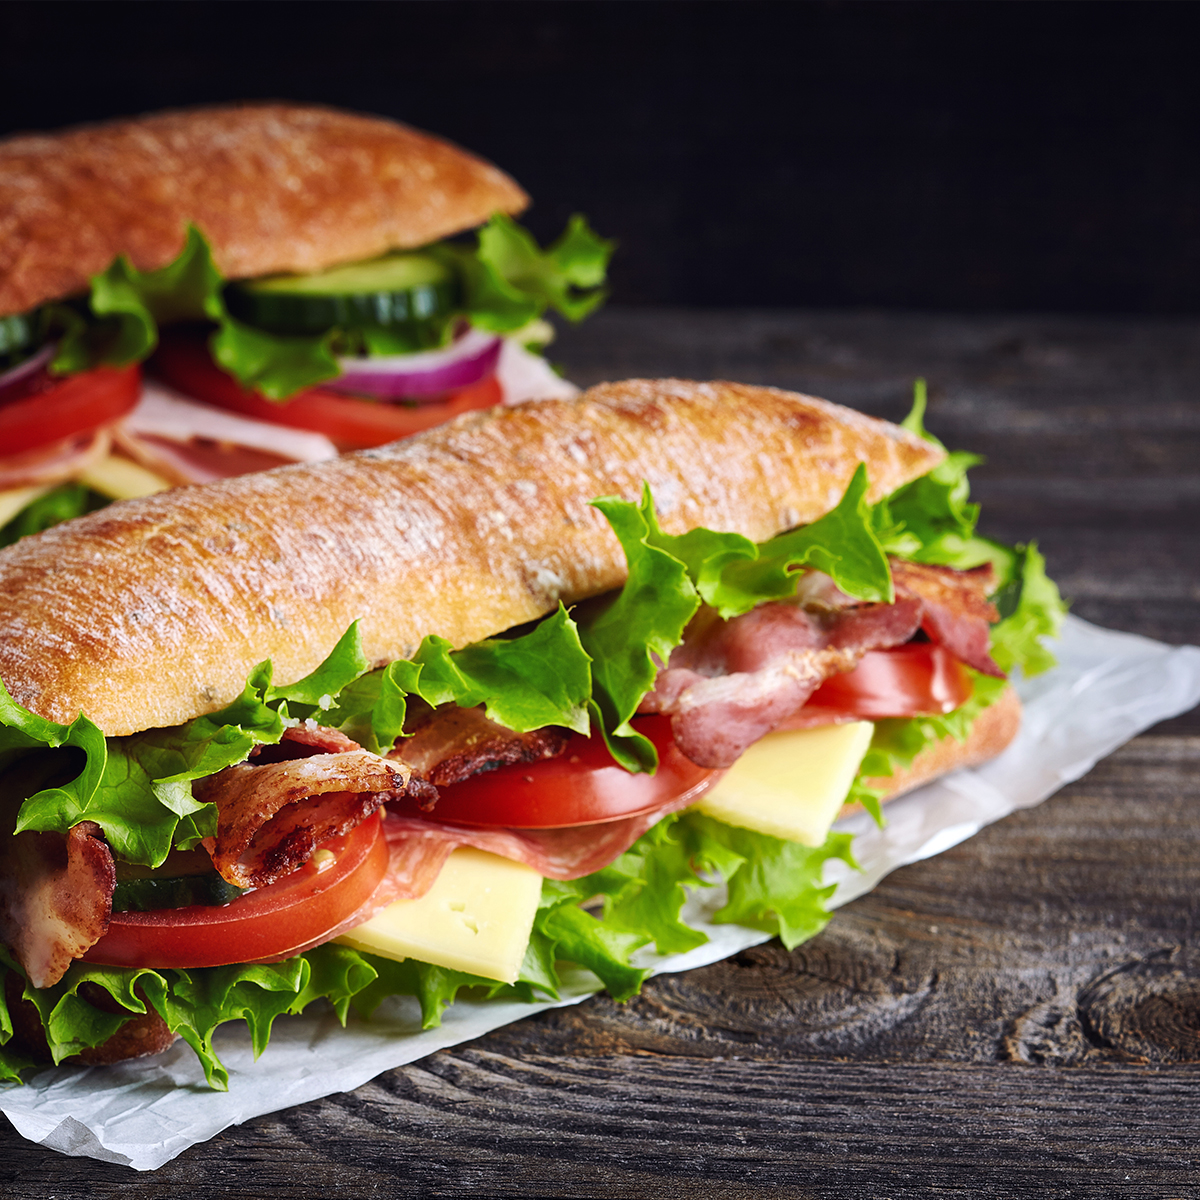 photo of a beautiful sub sandwich